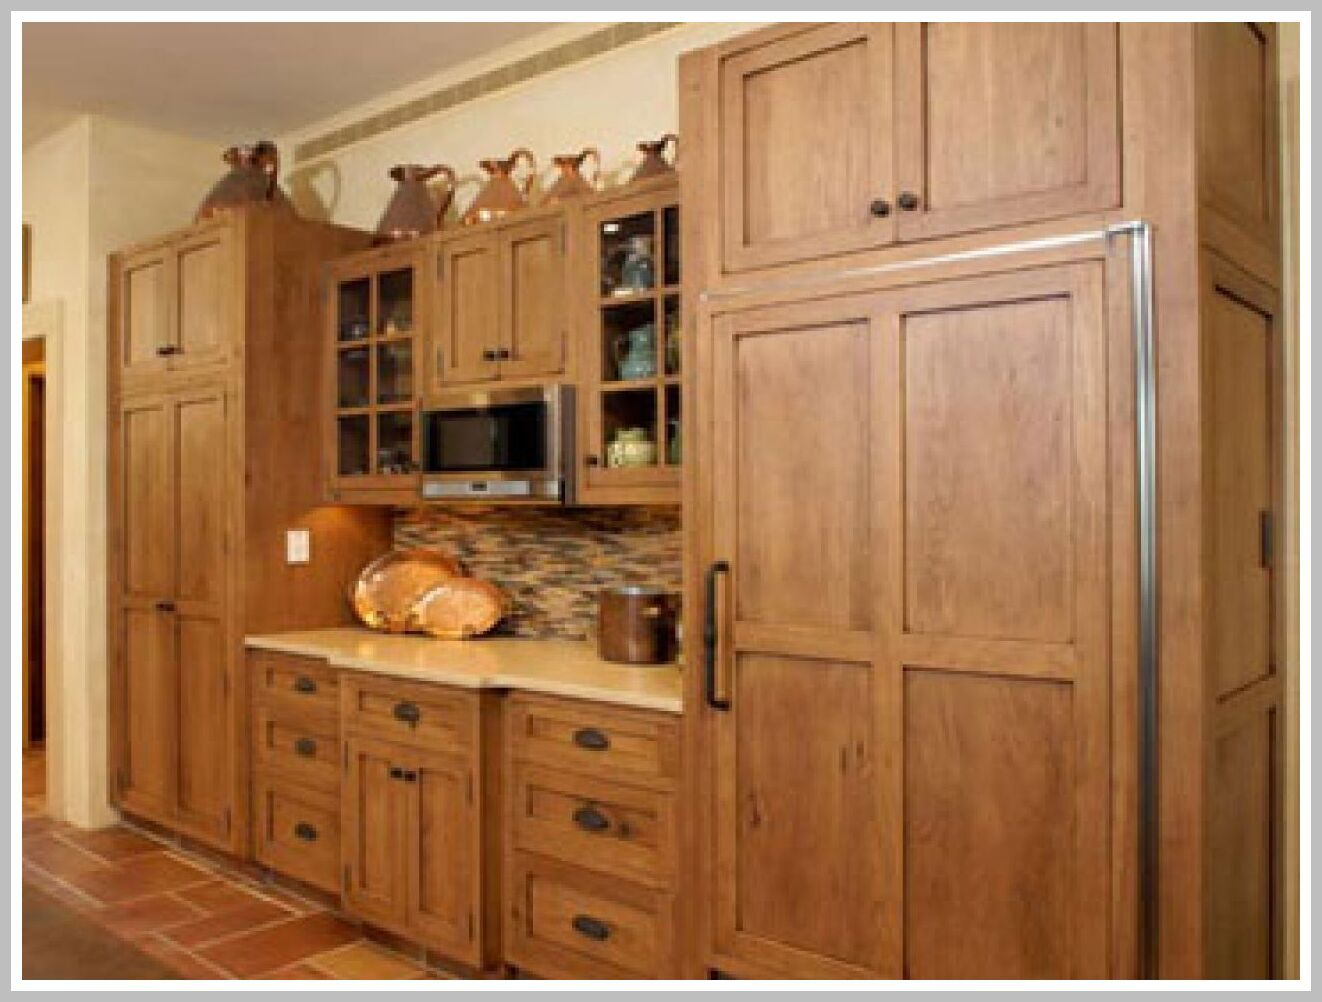 103 Reference Of Mission Style Hickory Kitchen Cabinets In 2020 Shaker Style Kitchen Cabinets Shaker Style Kitchens Kitchen Cabinet Styles